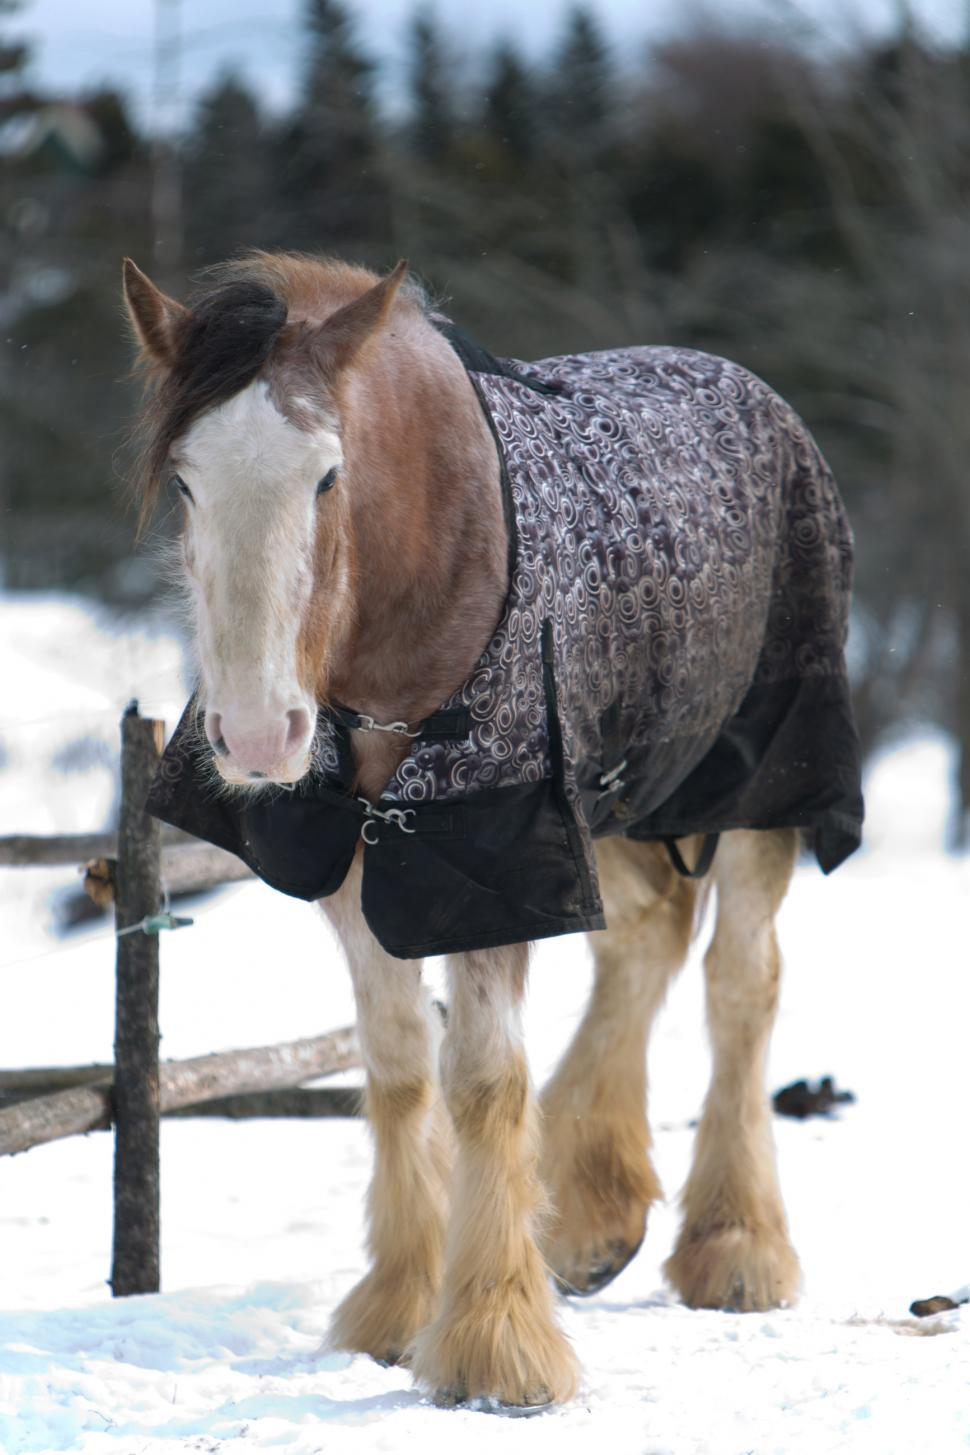 Download Free Stock HD Photo of Horse standing in snow Online